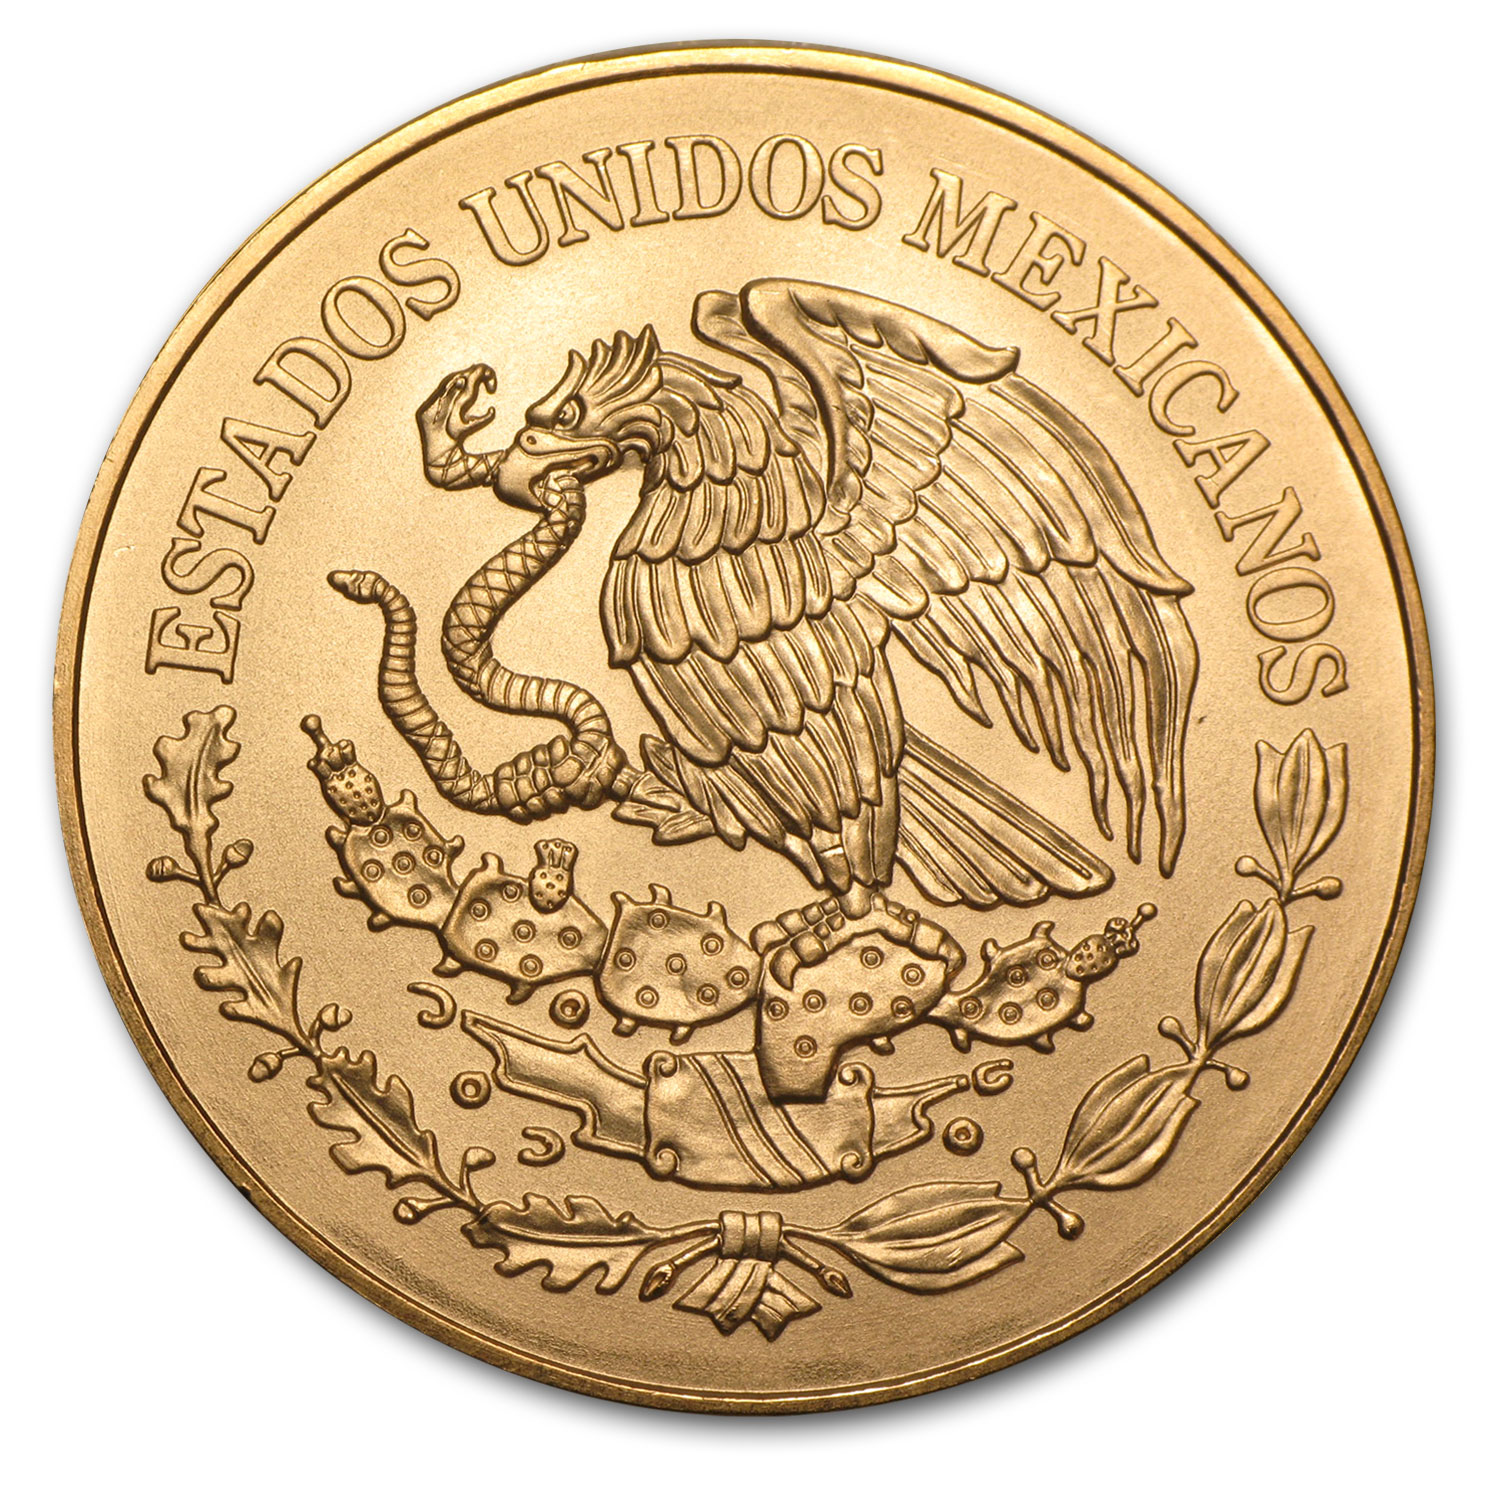 2010 Mexico Gold 200 Pesos Bicentenary Commem BU